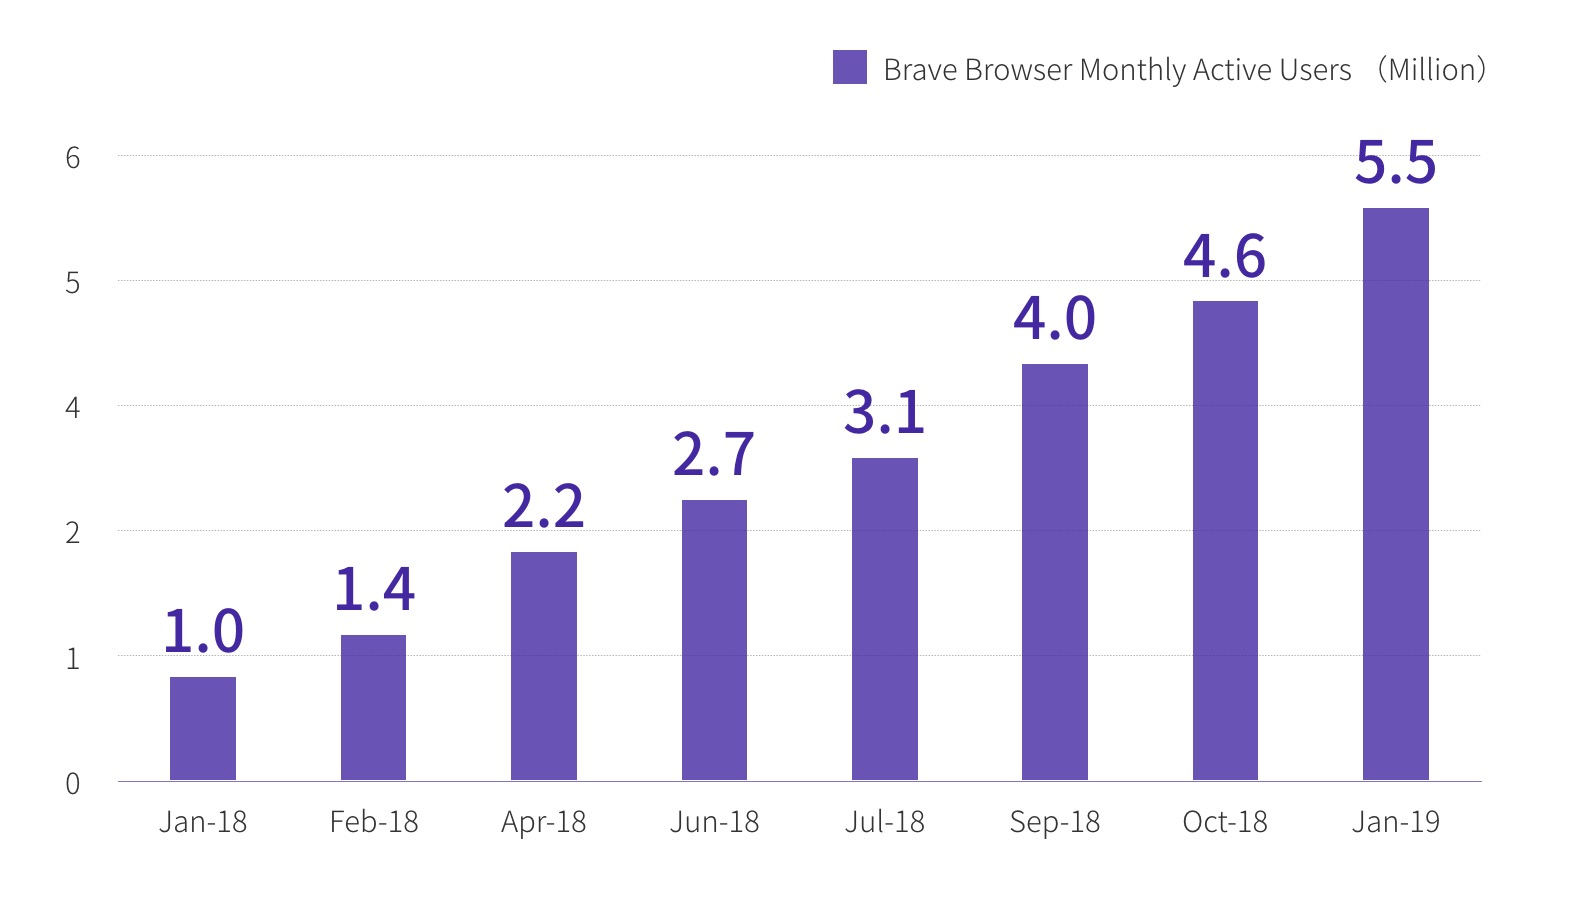 Monthly Active users - Brave Browser Users Has Grown by 450% Since January 2018